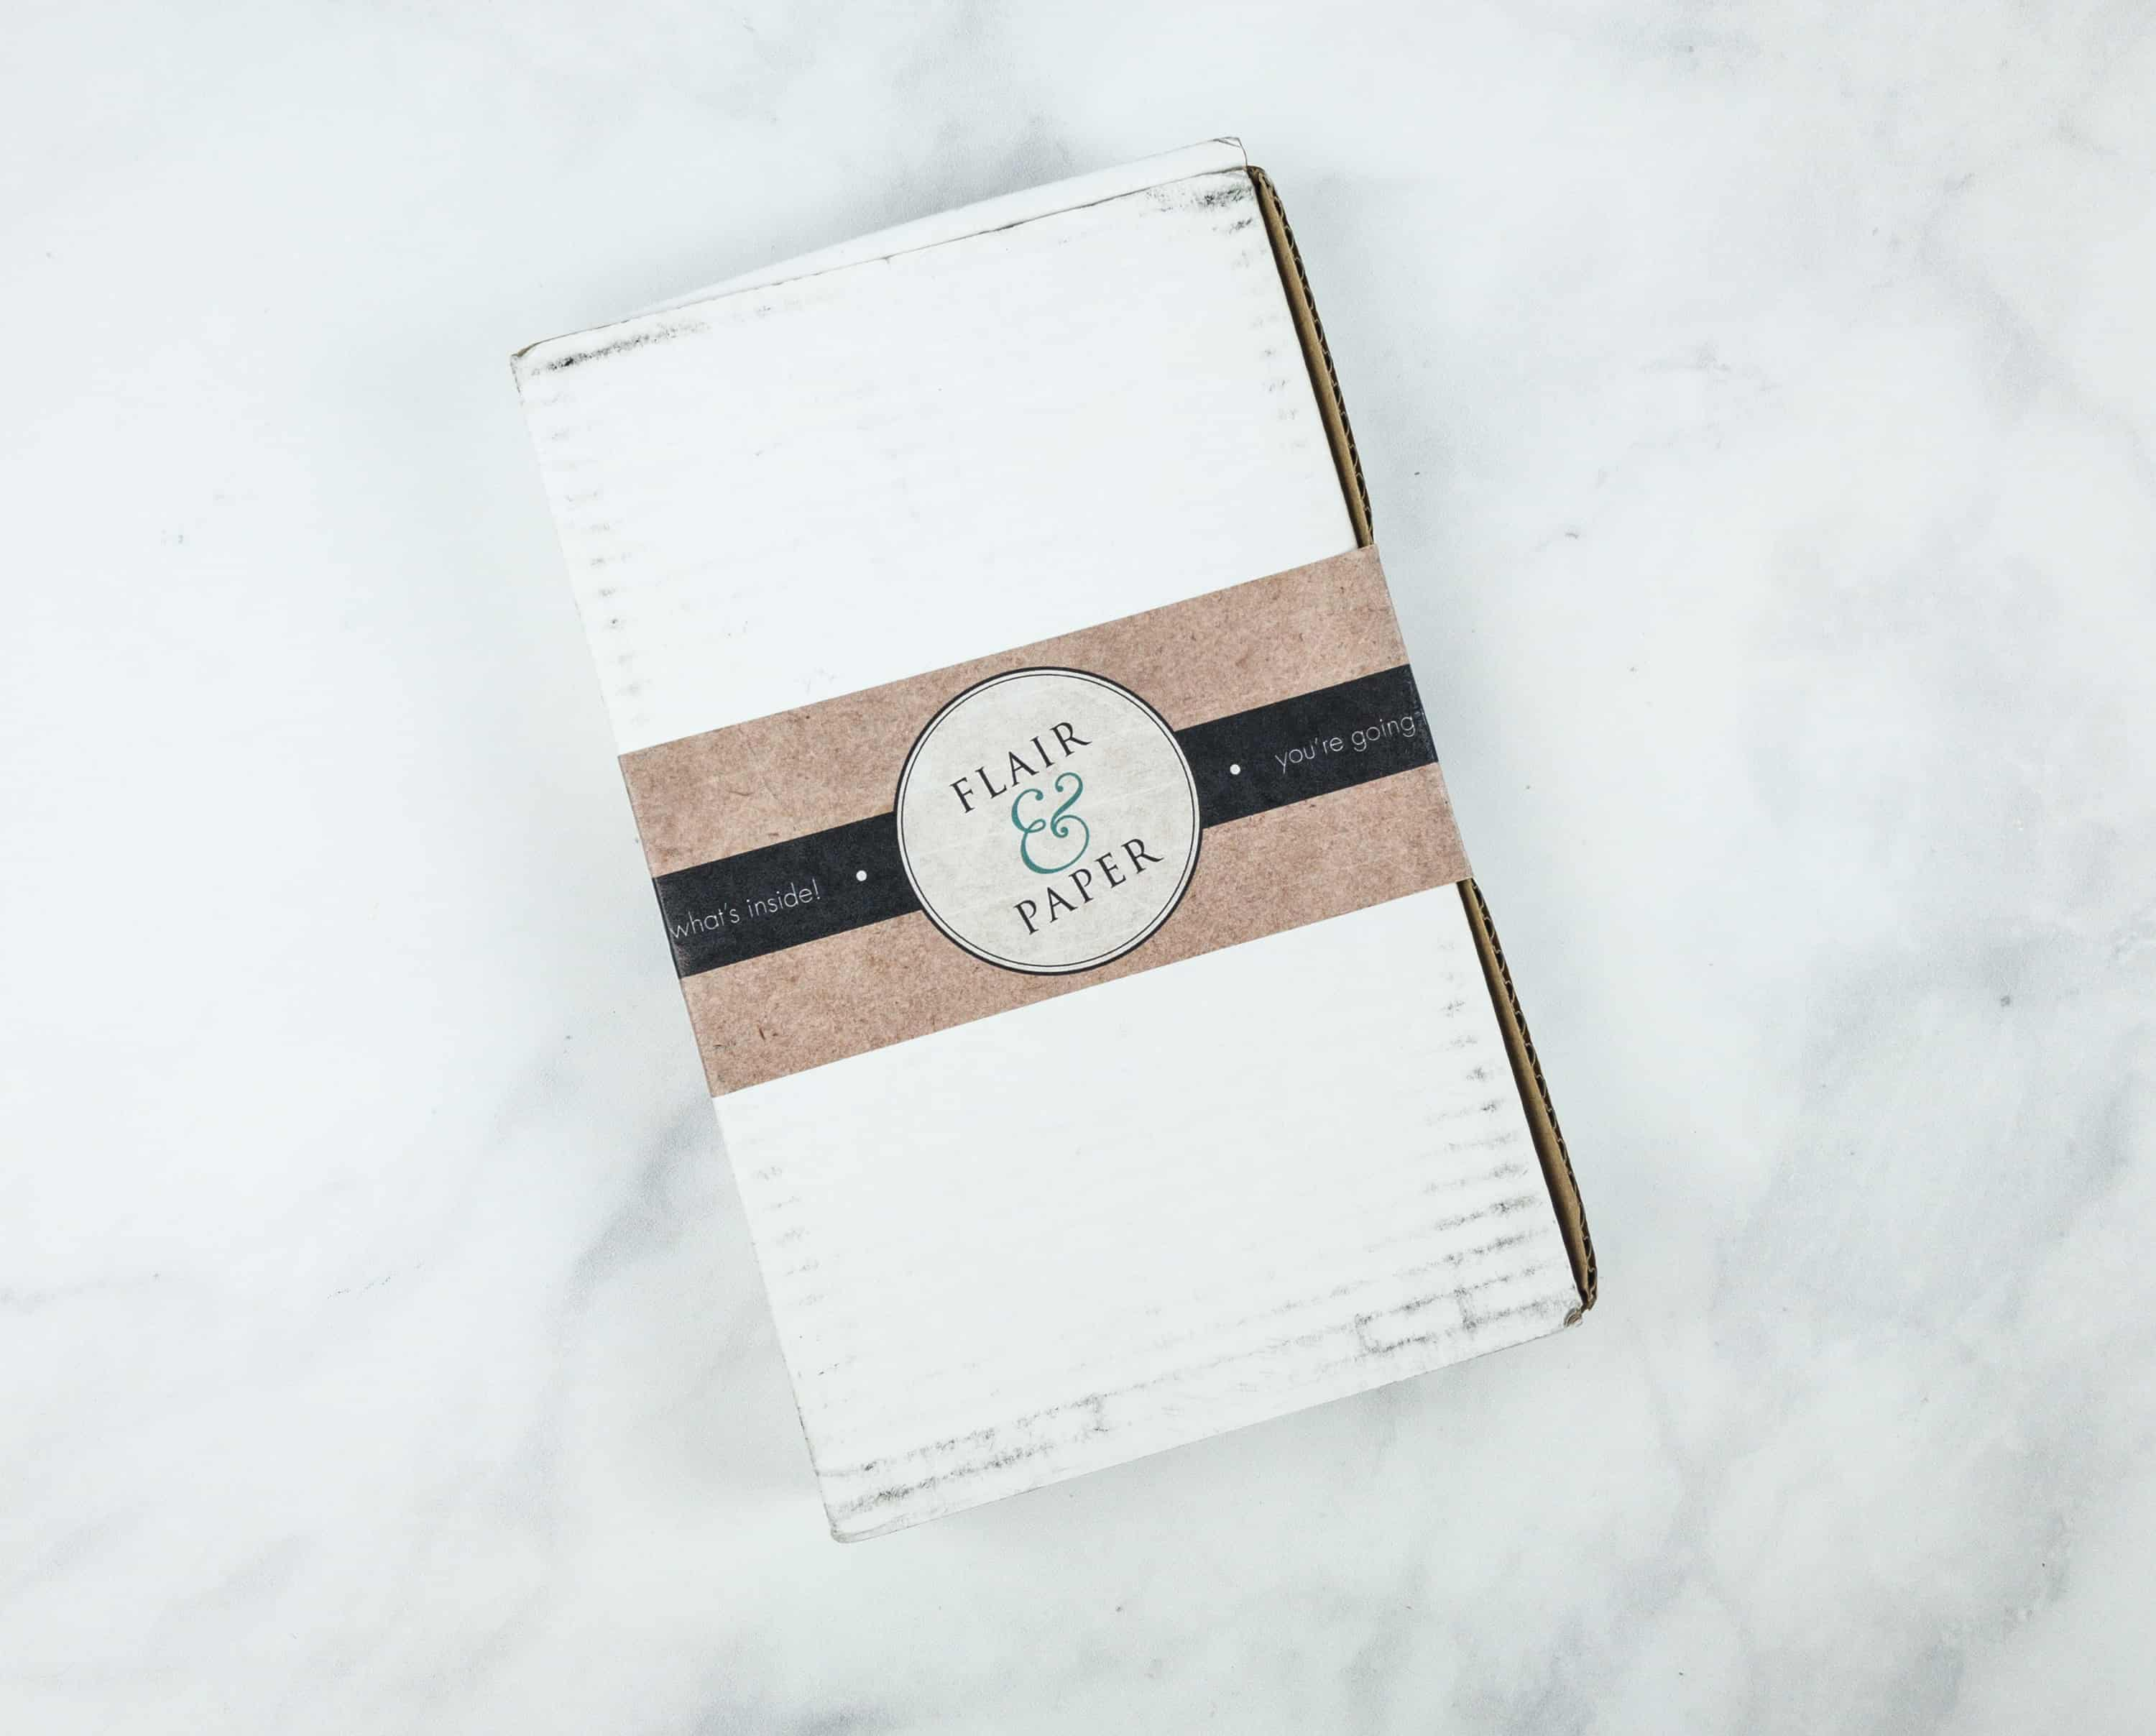 Flair and paper october 2018 subscription box review coupon flair paper is a monthly subscription of stationery and greeting cards each box costs 1999 and contains 4 to 5 greeting cards and 1 to 2 stationery m4hsunfo